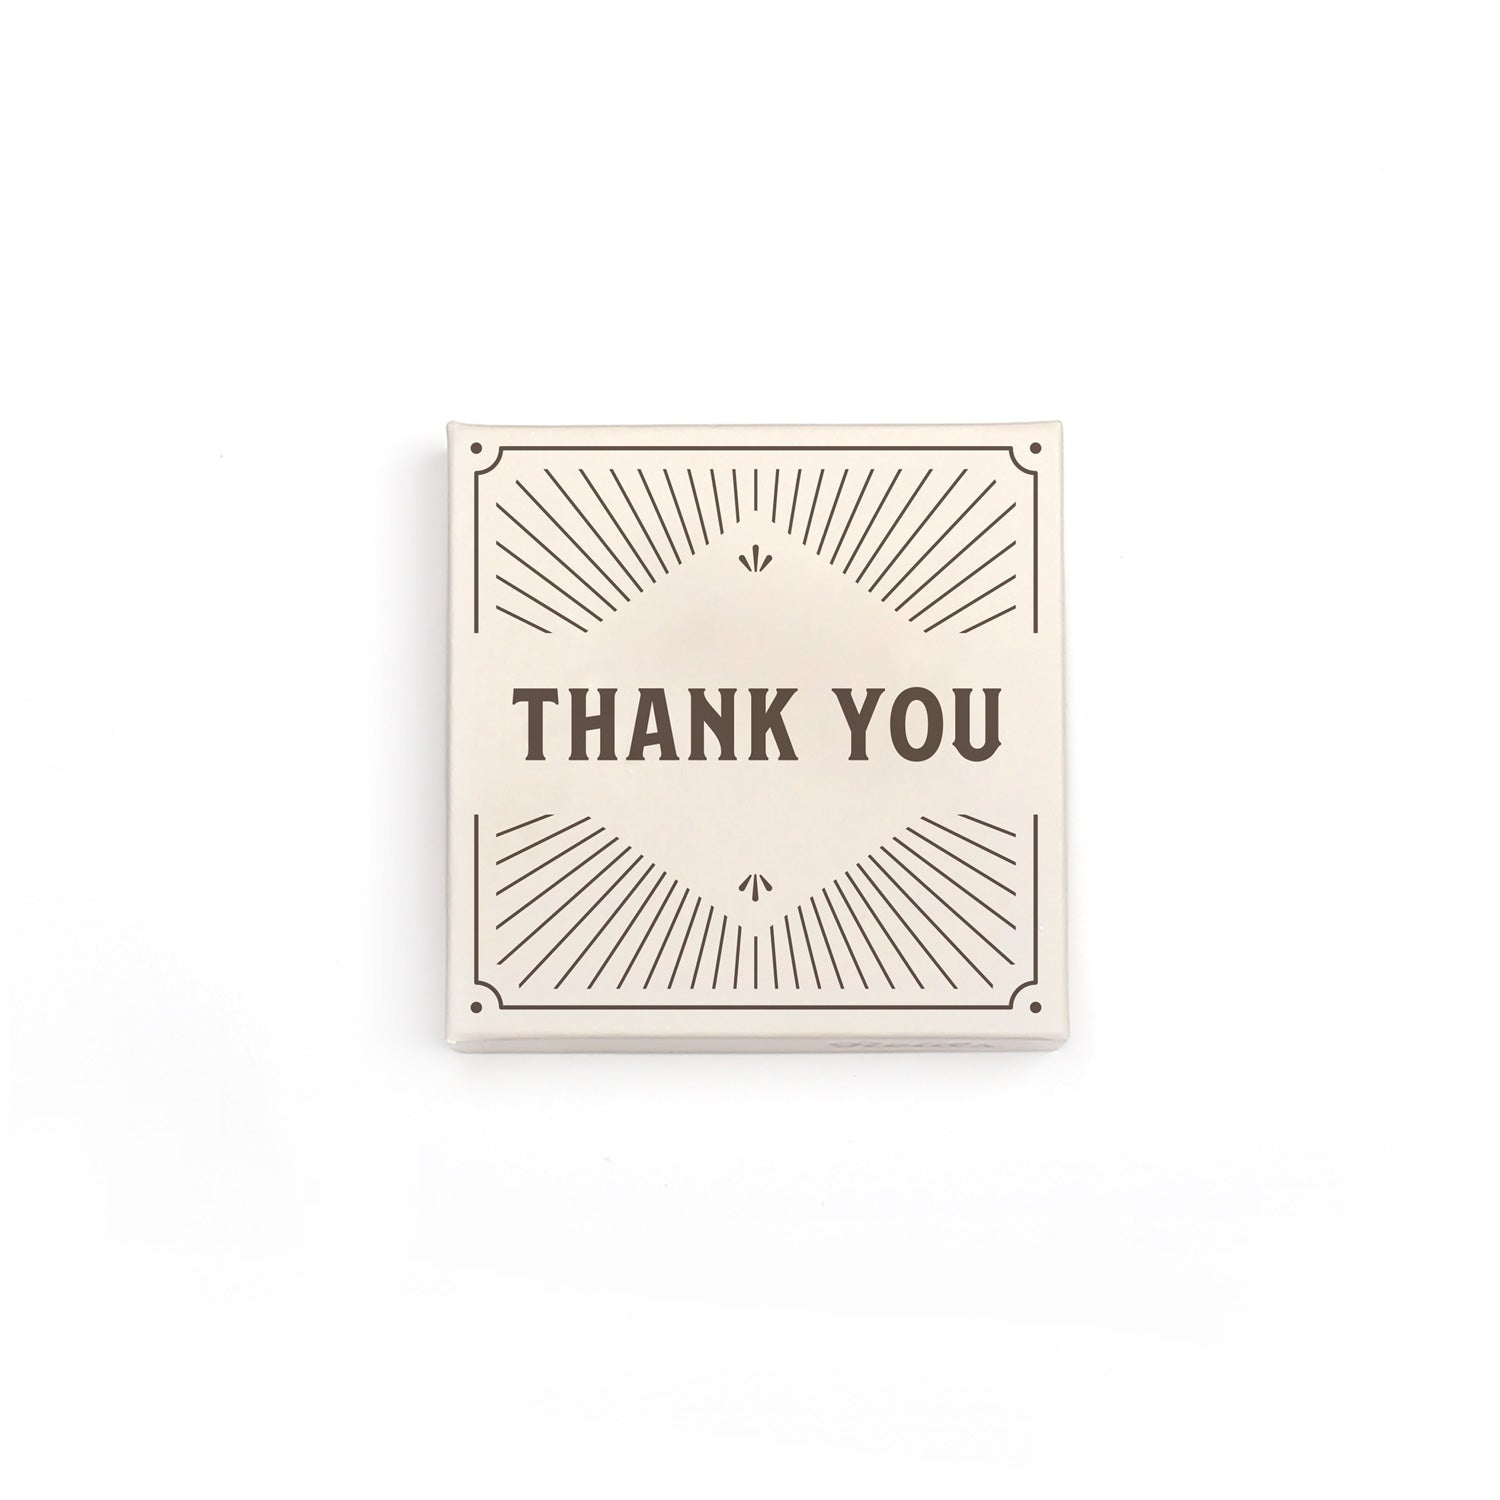 100 g thank you box image. Cream box with brown thank you, and decorative lines